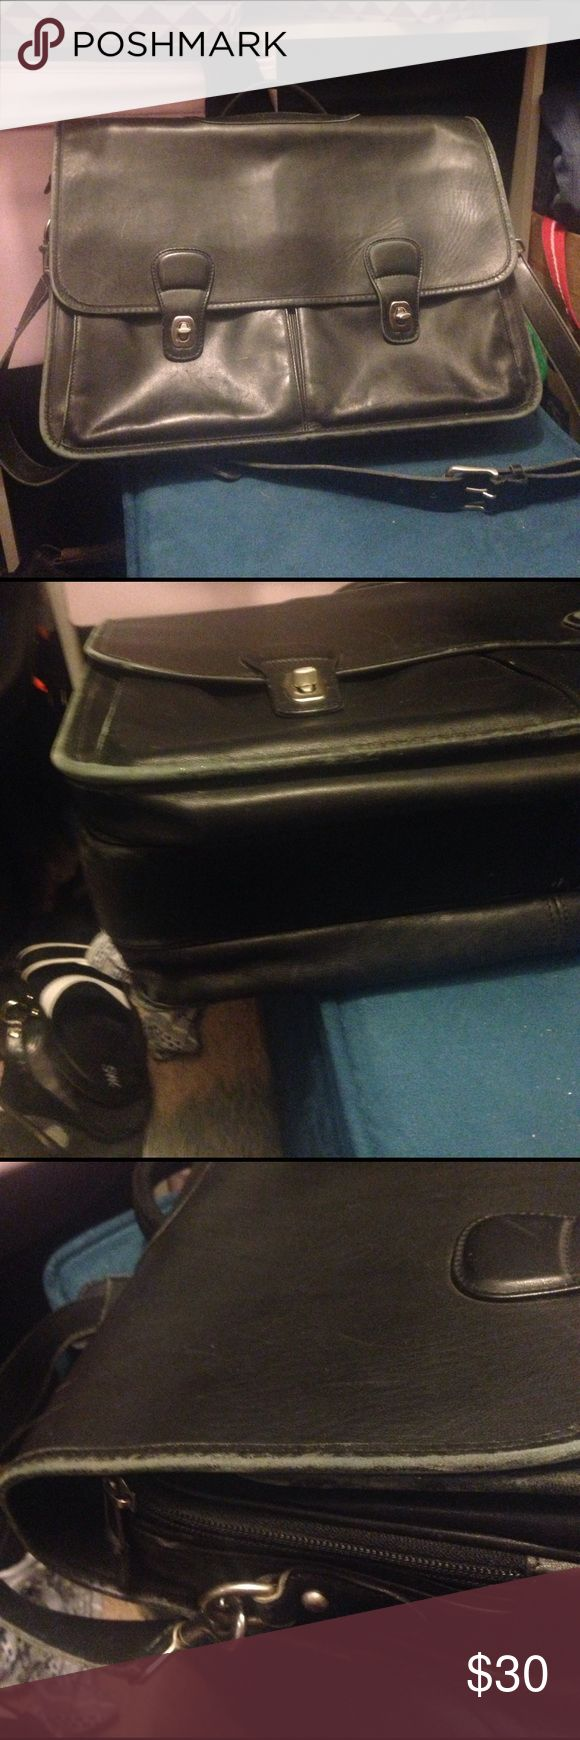 Coach briefcase Large Coach  briefcase. Does show signs of wear, fading on edges and piping. Comes with a protective bag for tablets Coach Bags Briefcases